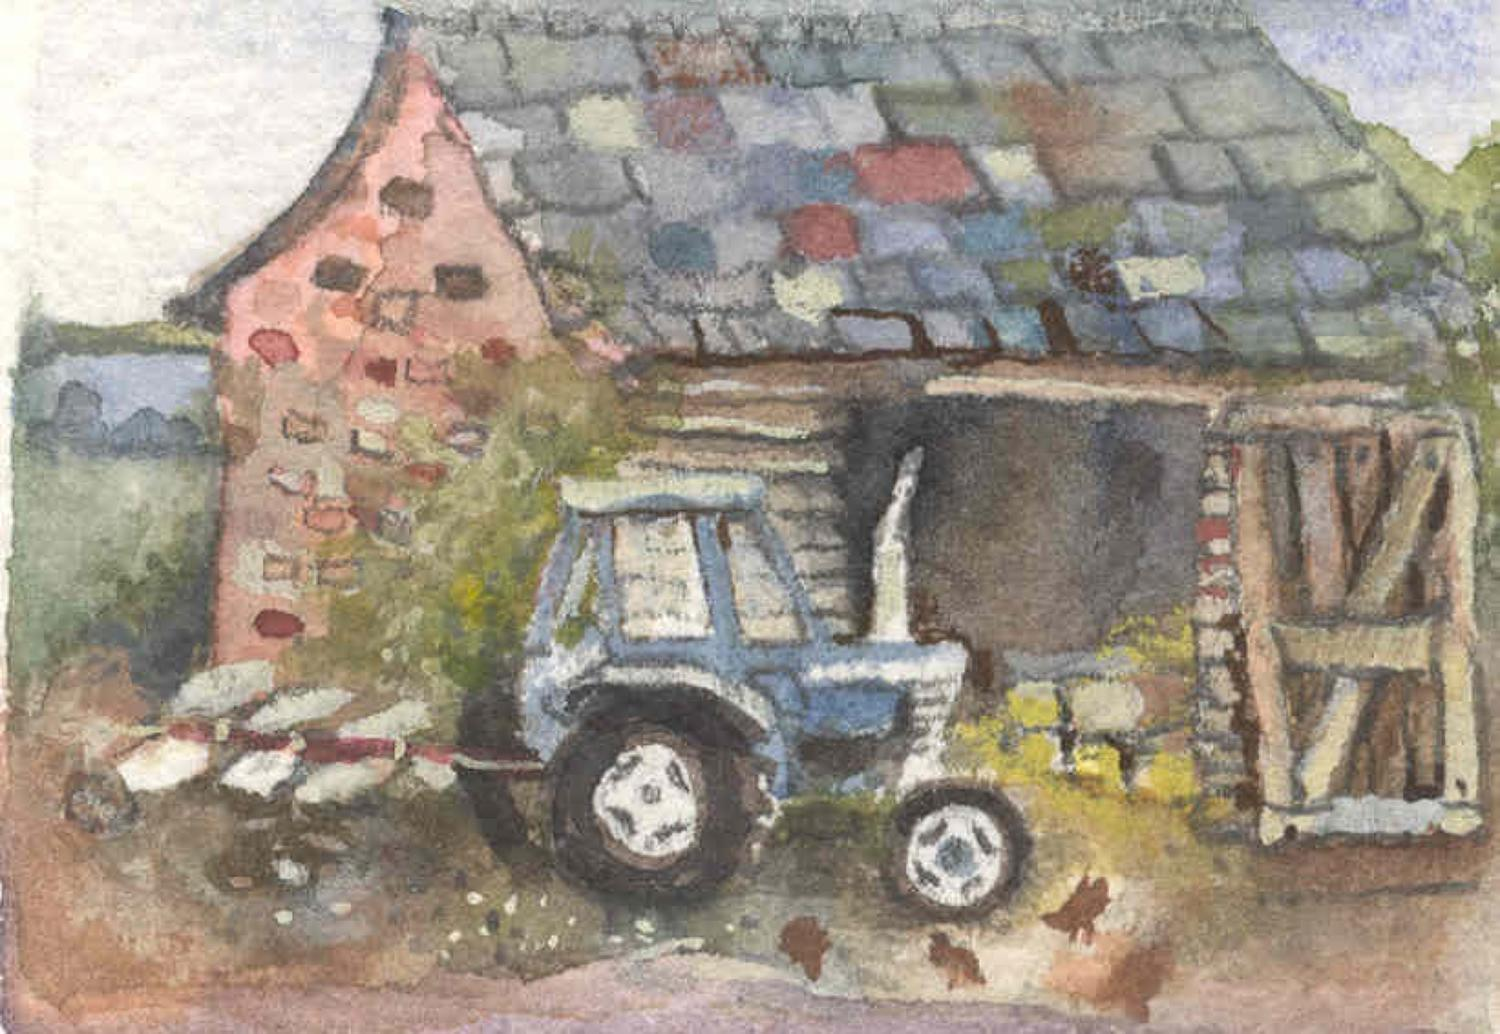 Tractor, barn & chickens